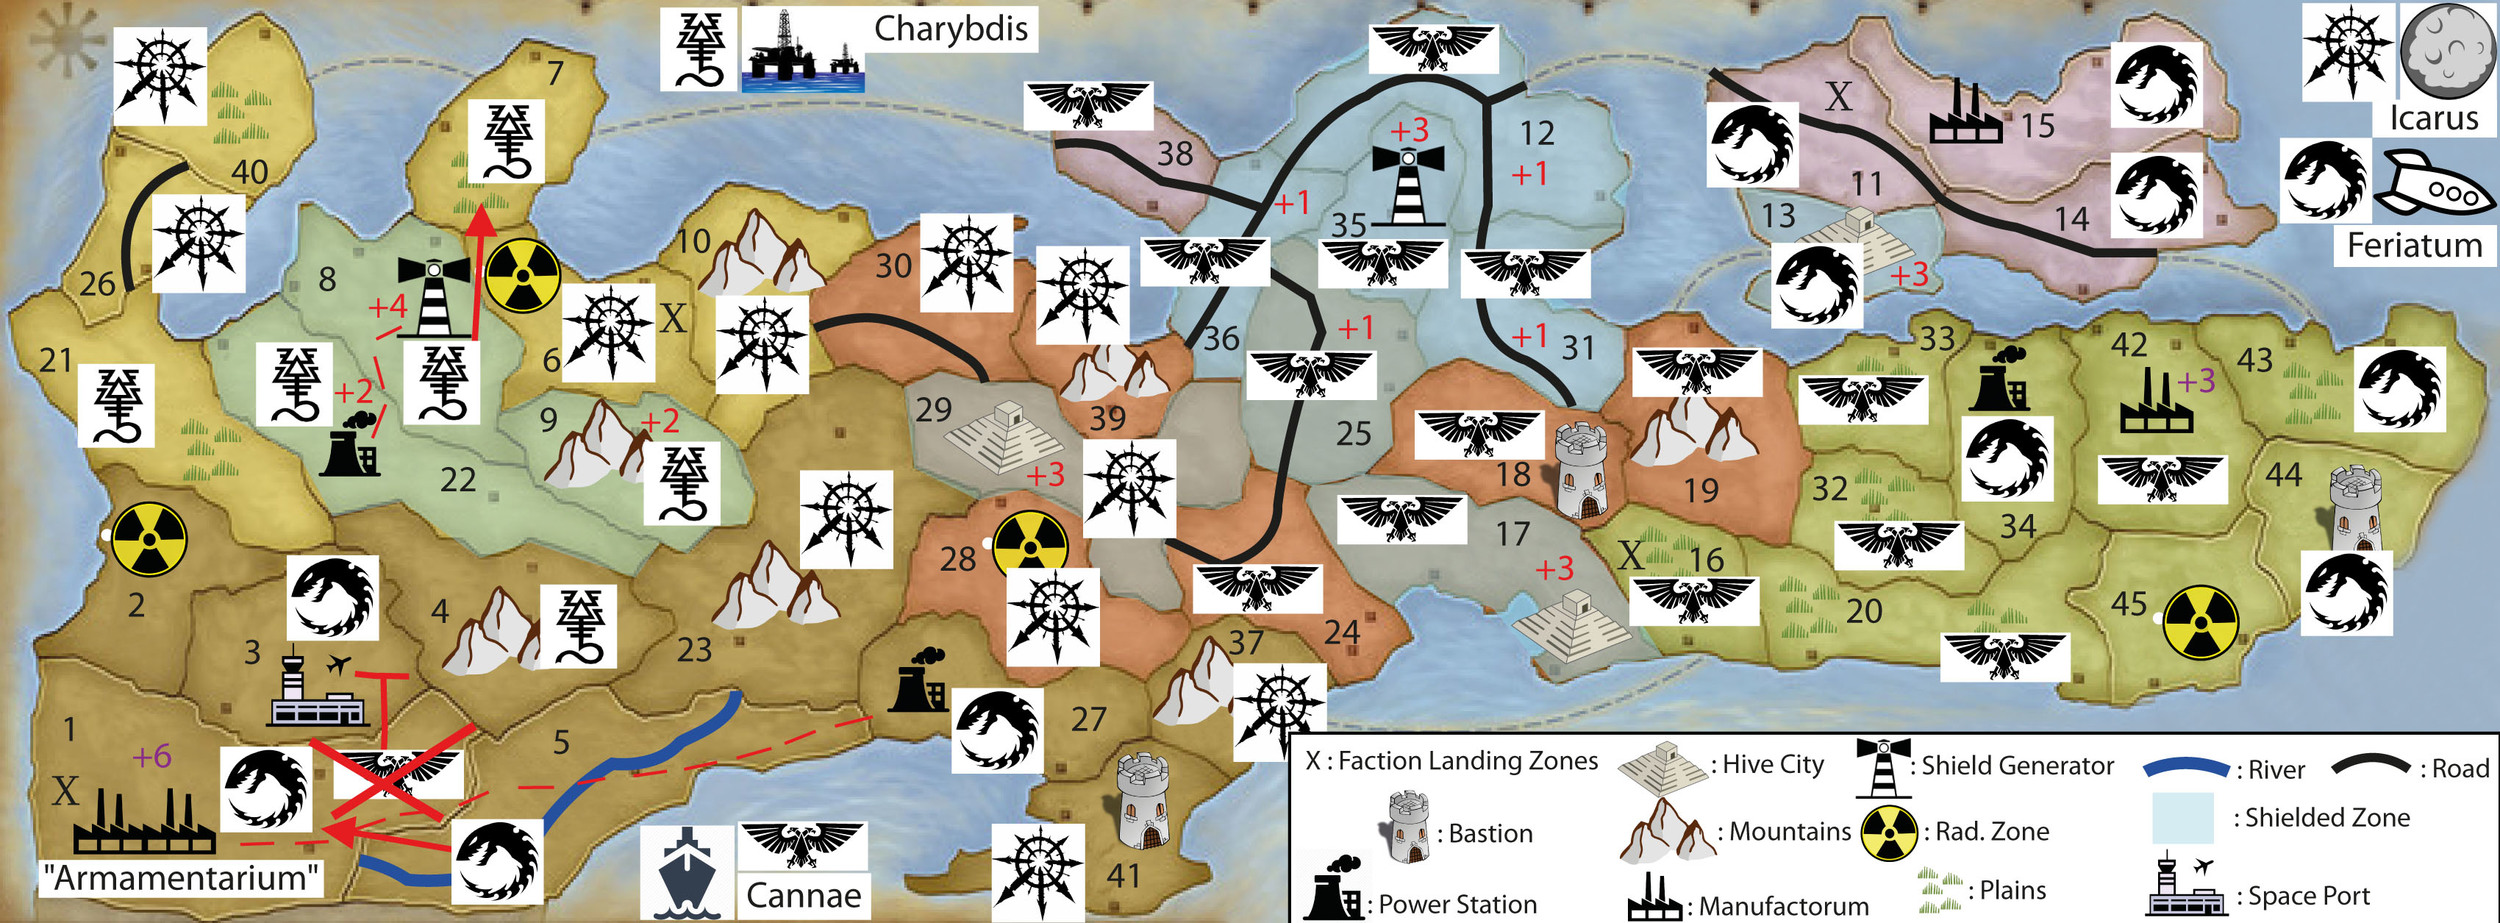 WINTER CAMPAIGN - END OF TURN 26